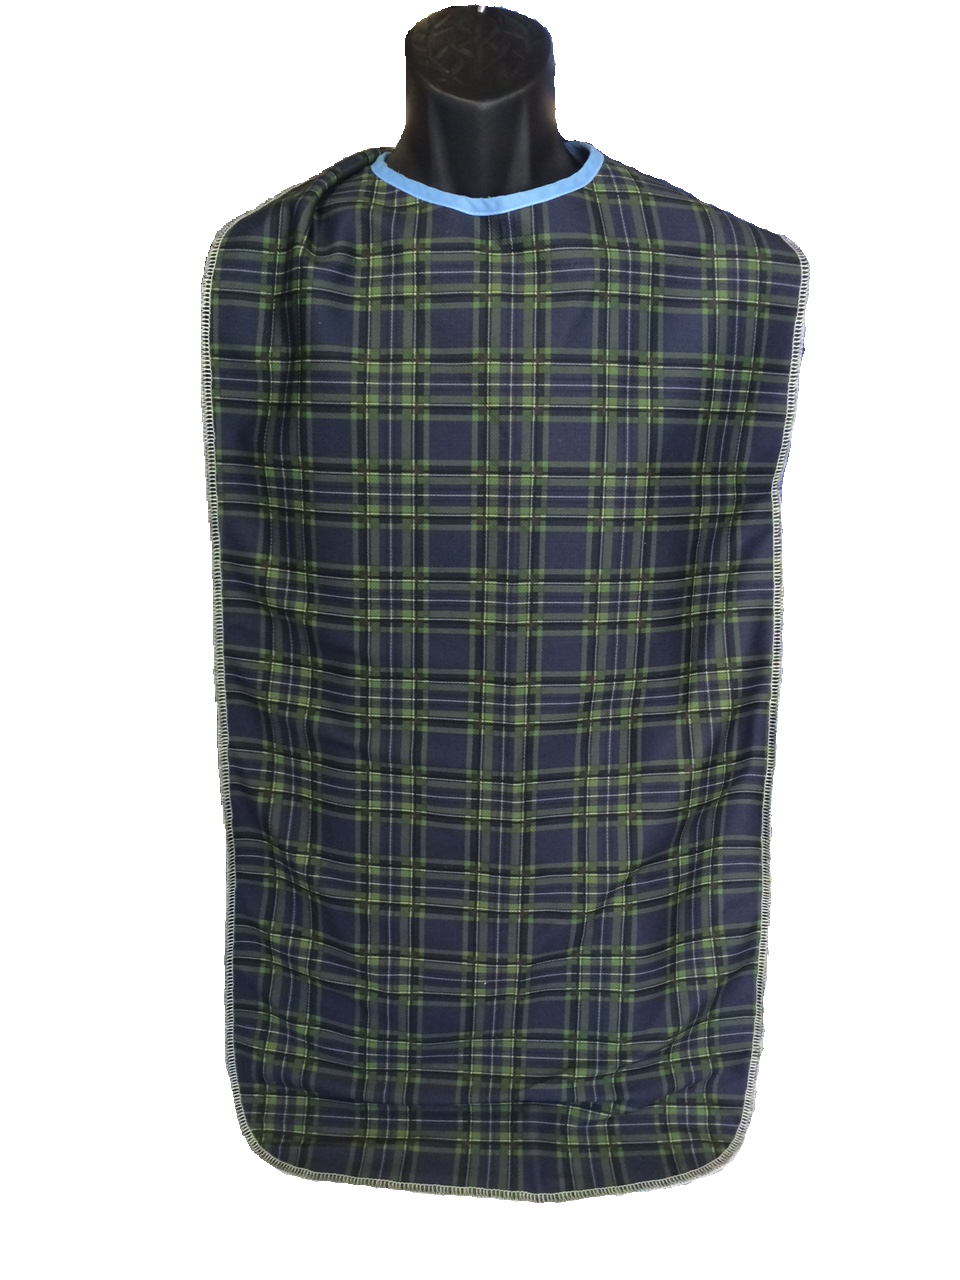 Adult Clothing Protector - 18x43 Rabbit Ear - Navy/Green Plaid